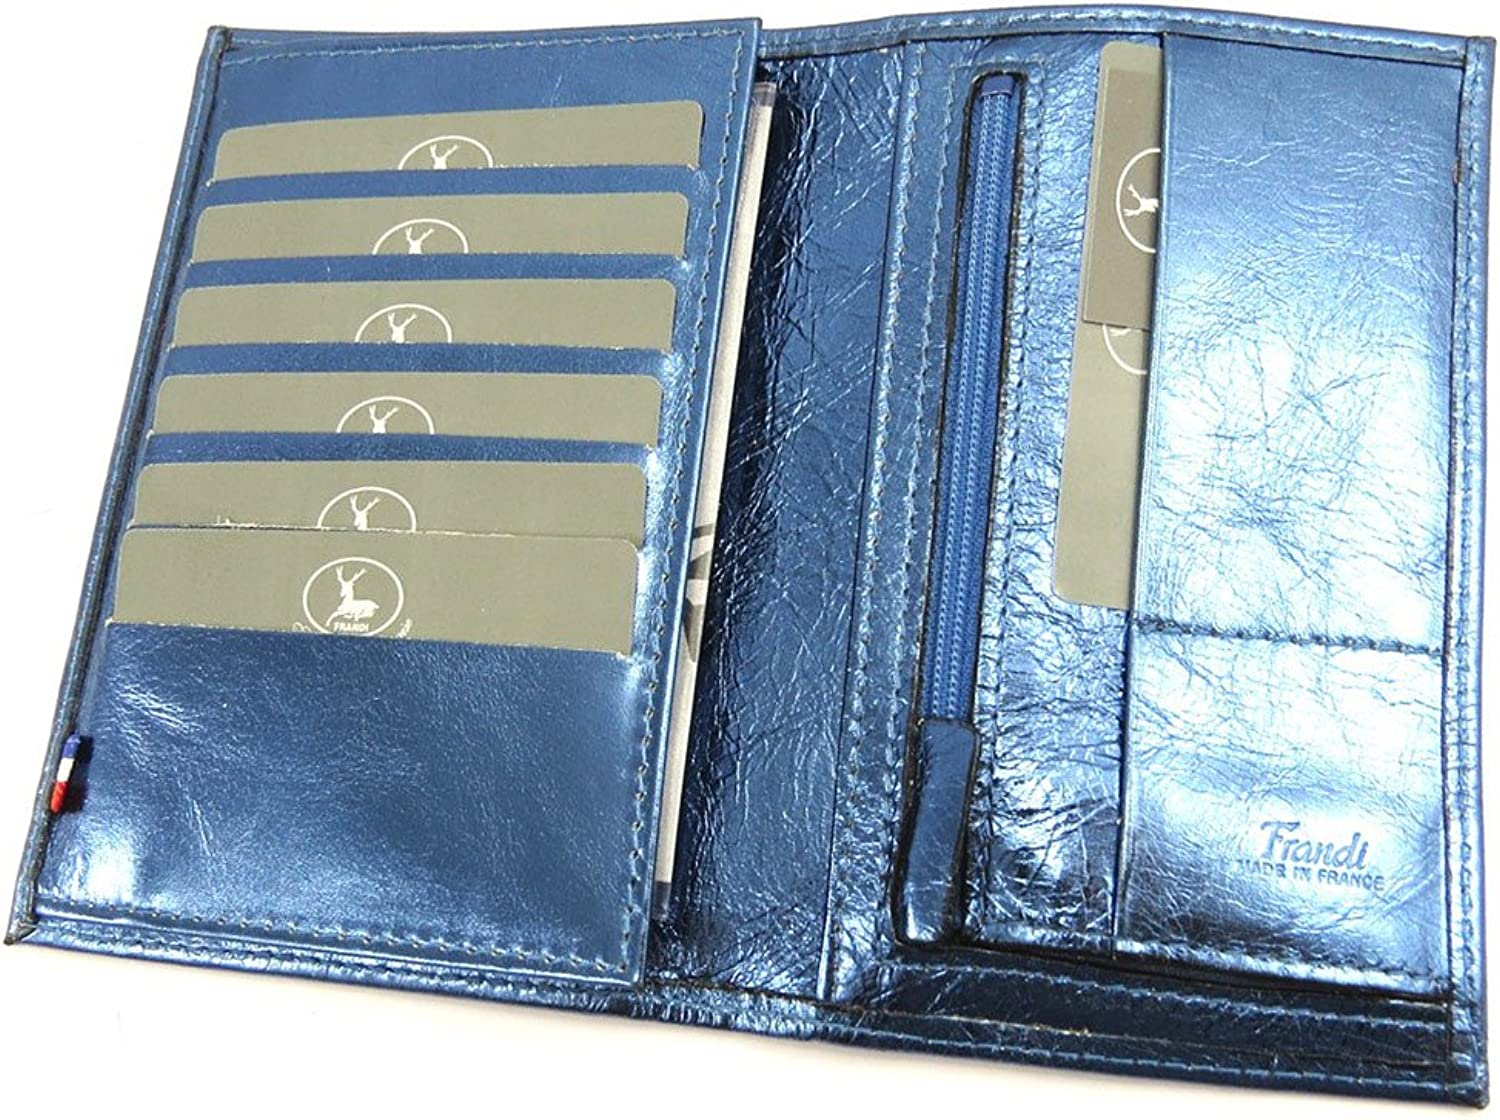 Leather wallet 'Frandi'bluee electra (+ cards).